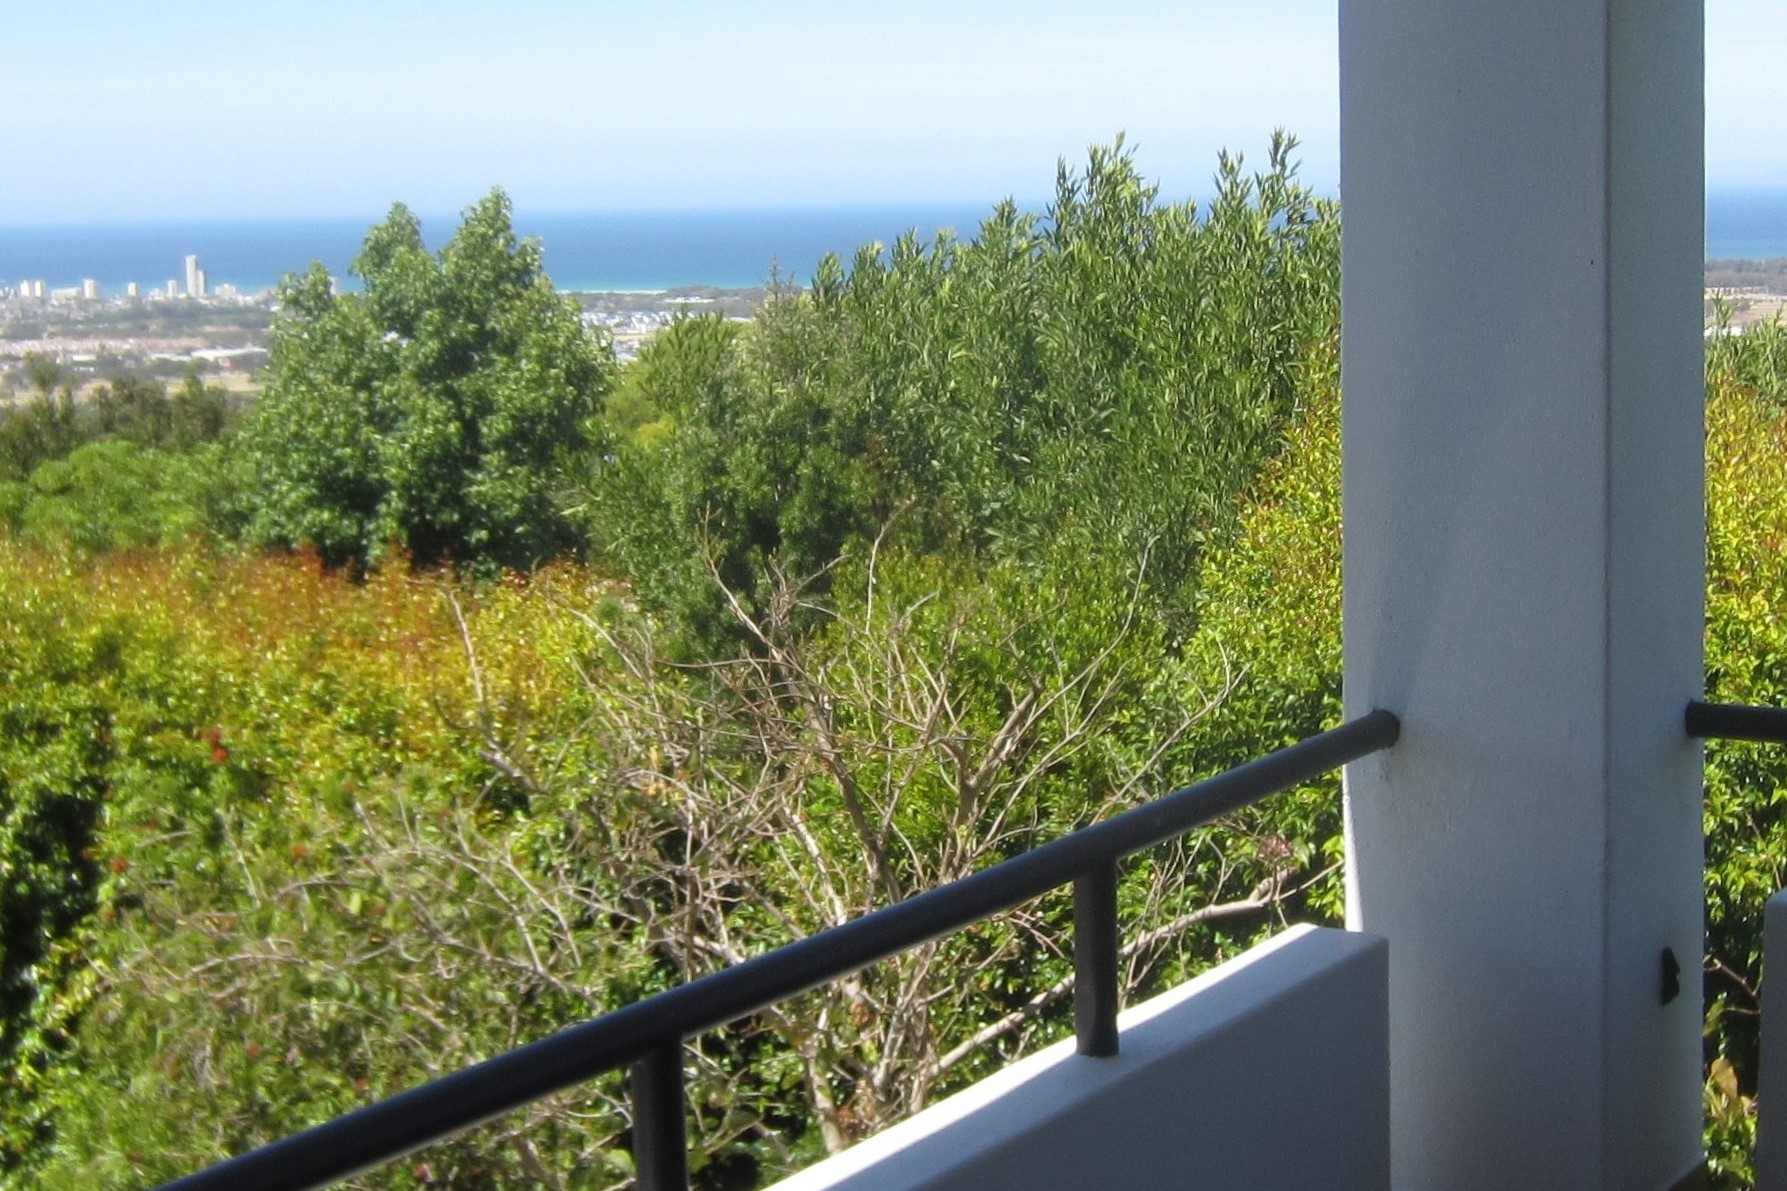 3 Bedroom House for sale in Monte Sereno ENT0015864 : photo#1